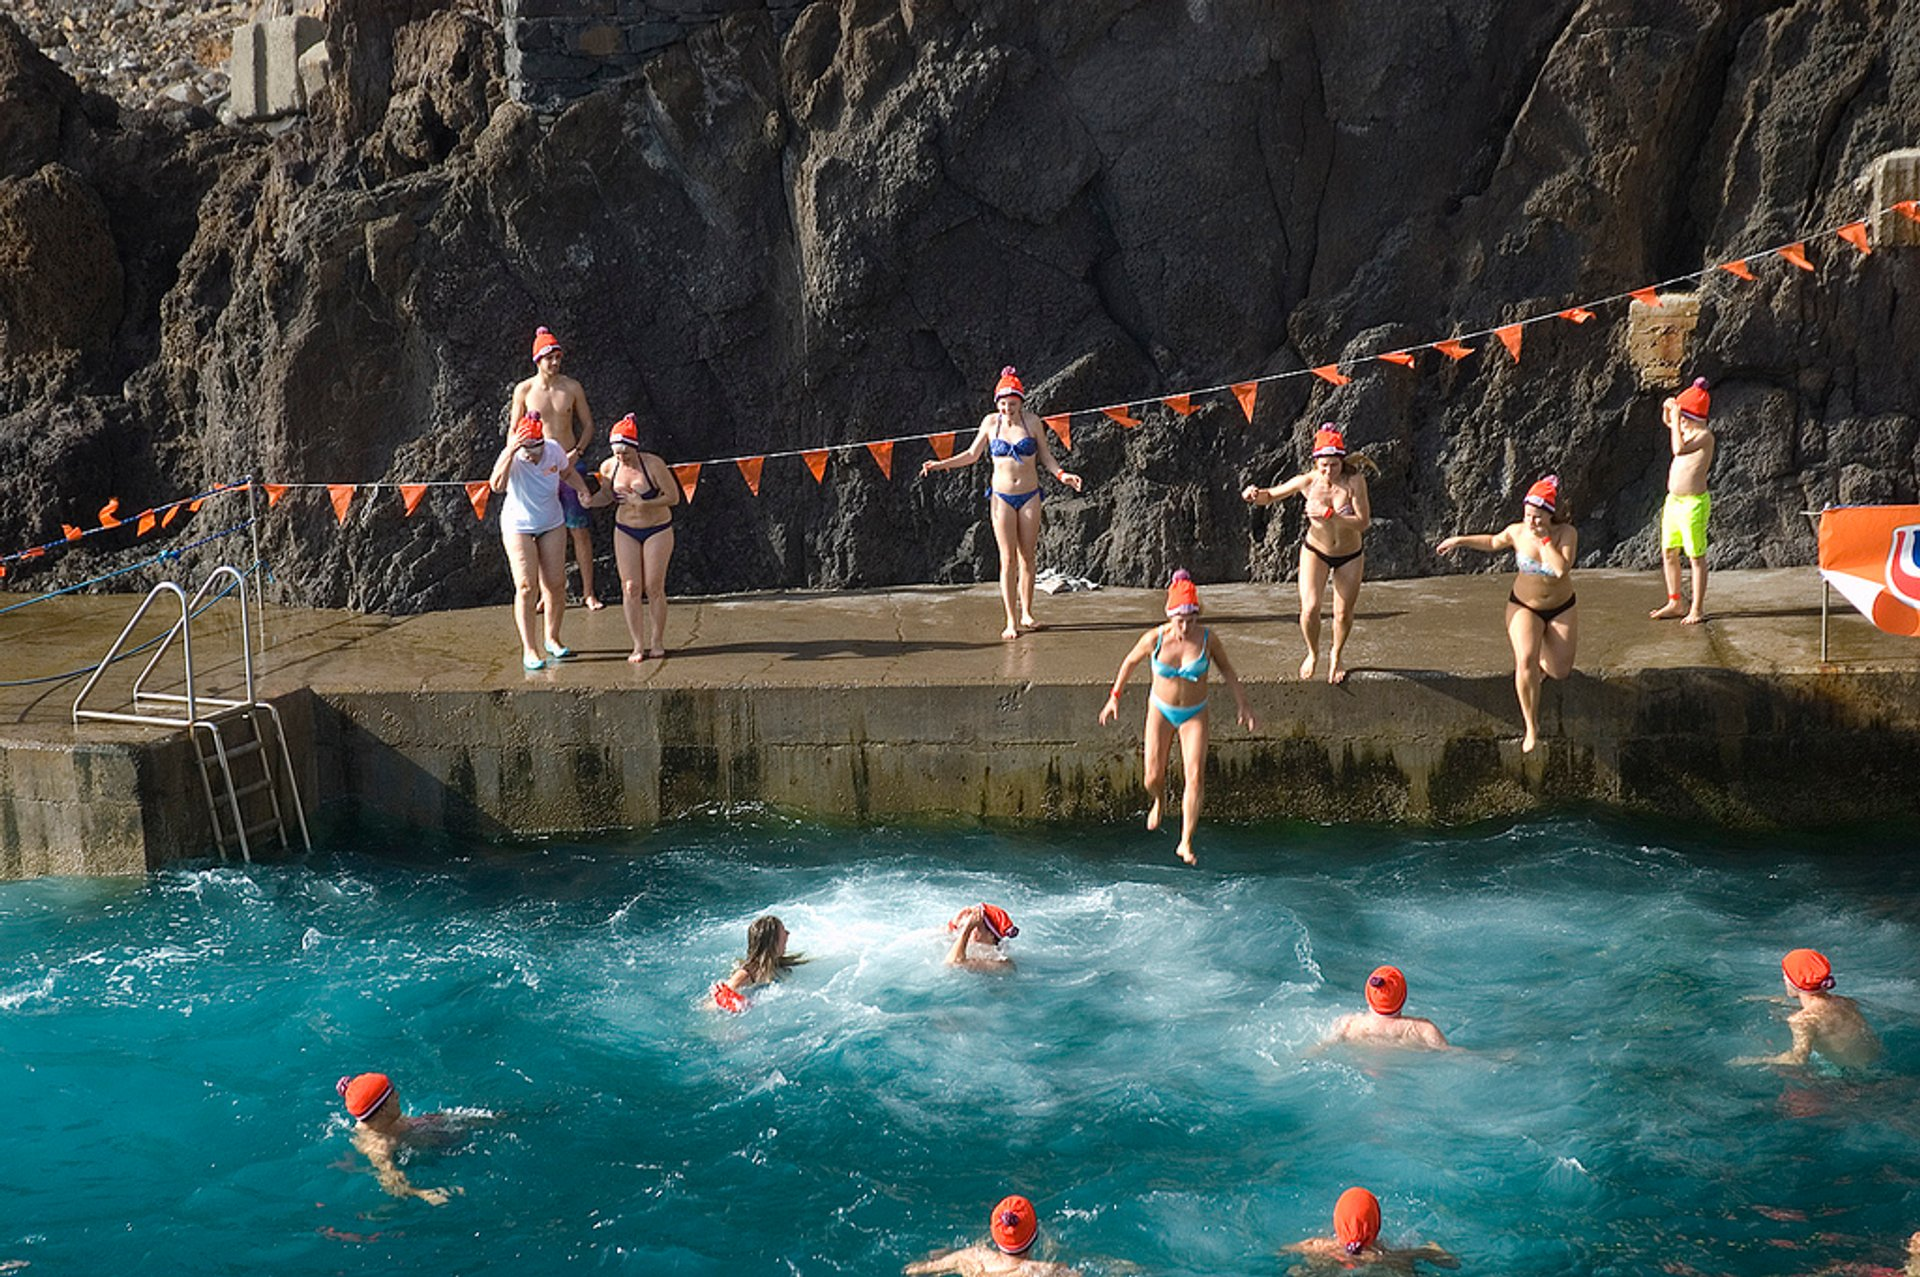 Madeira Plunge in Madeira 2019 - Best Time